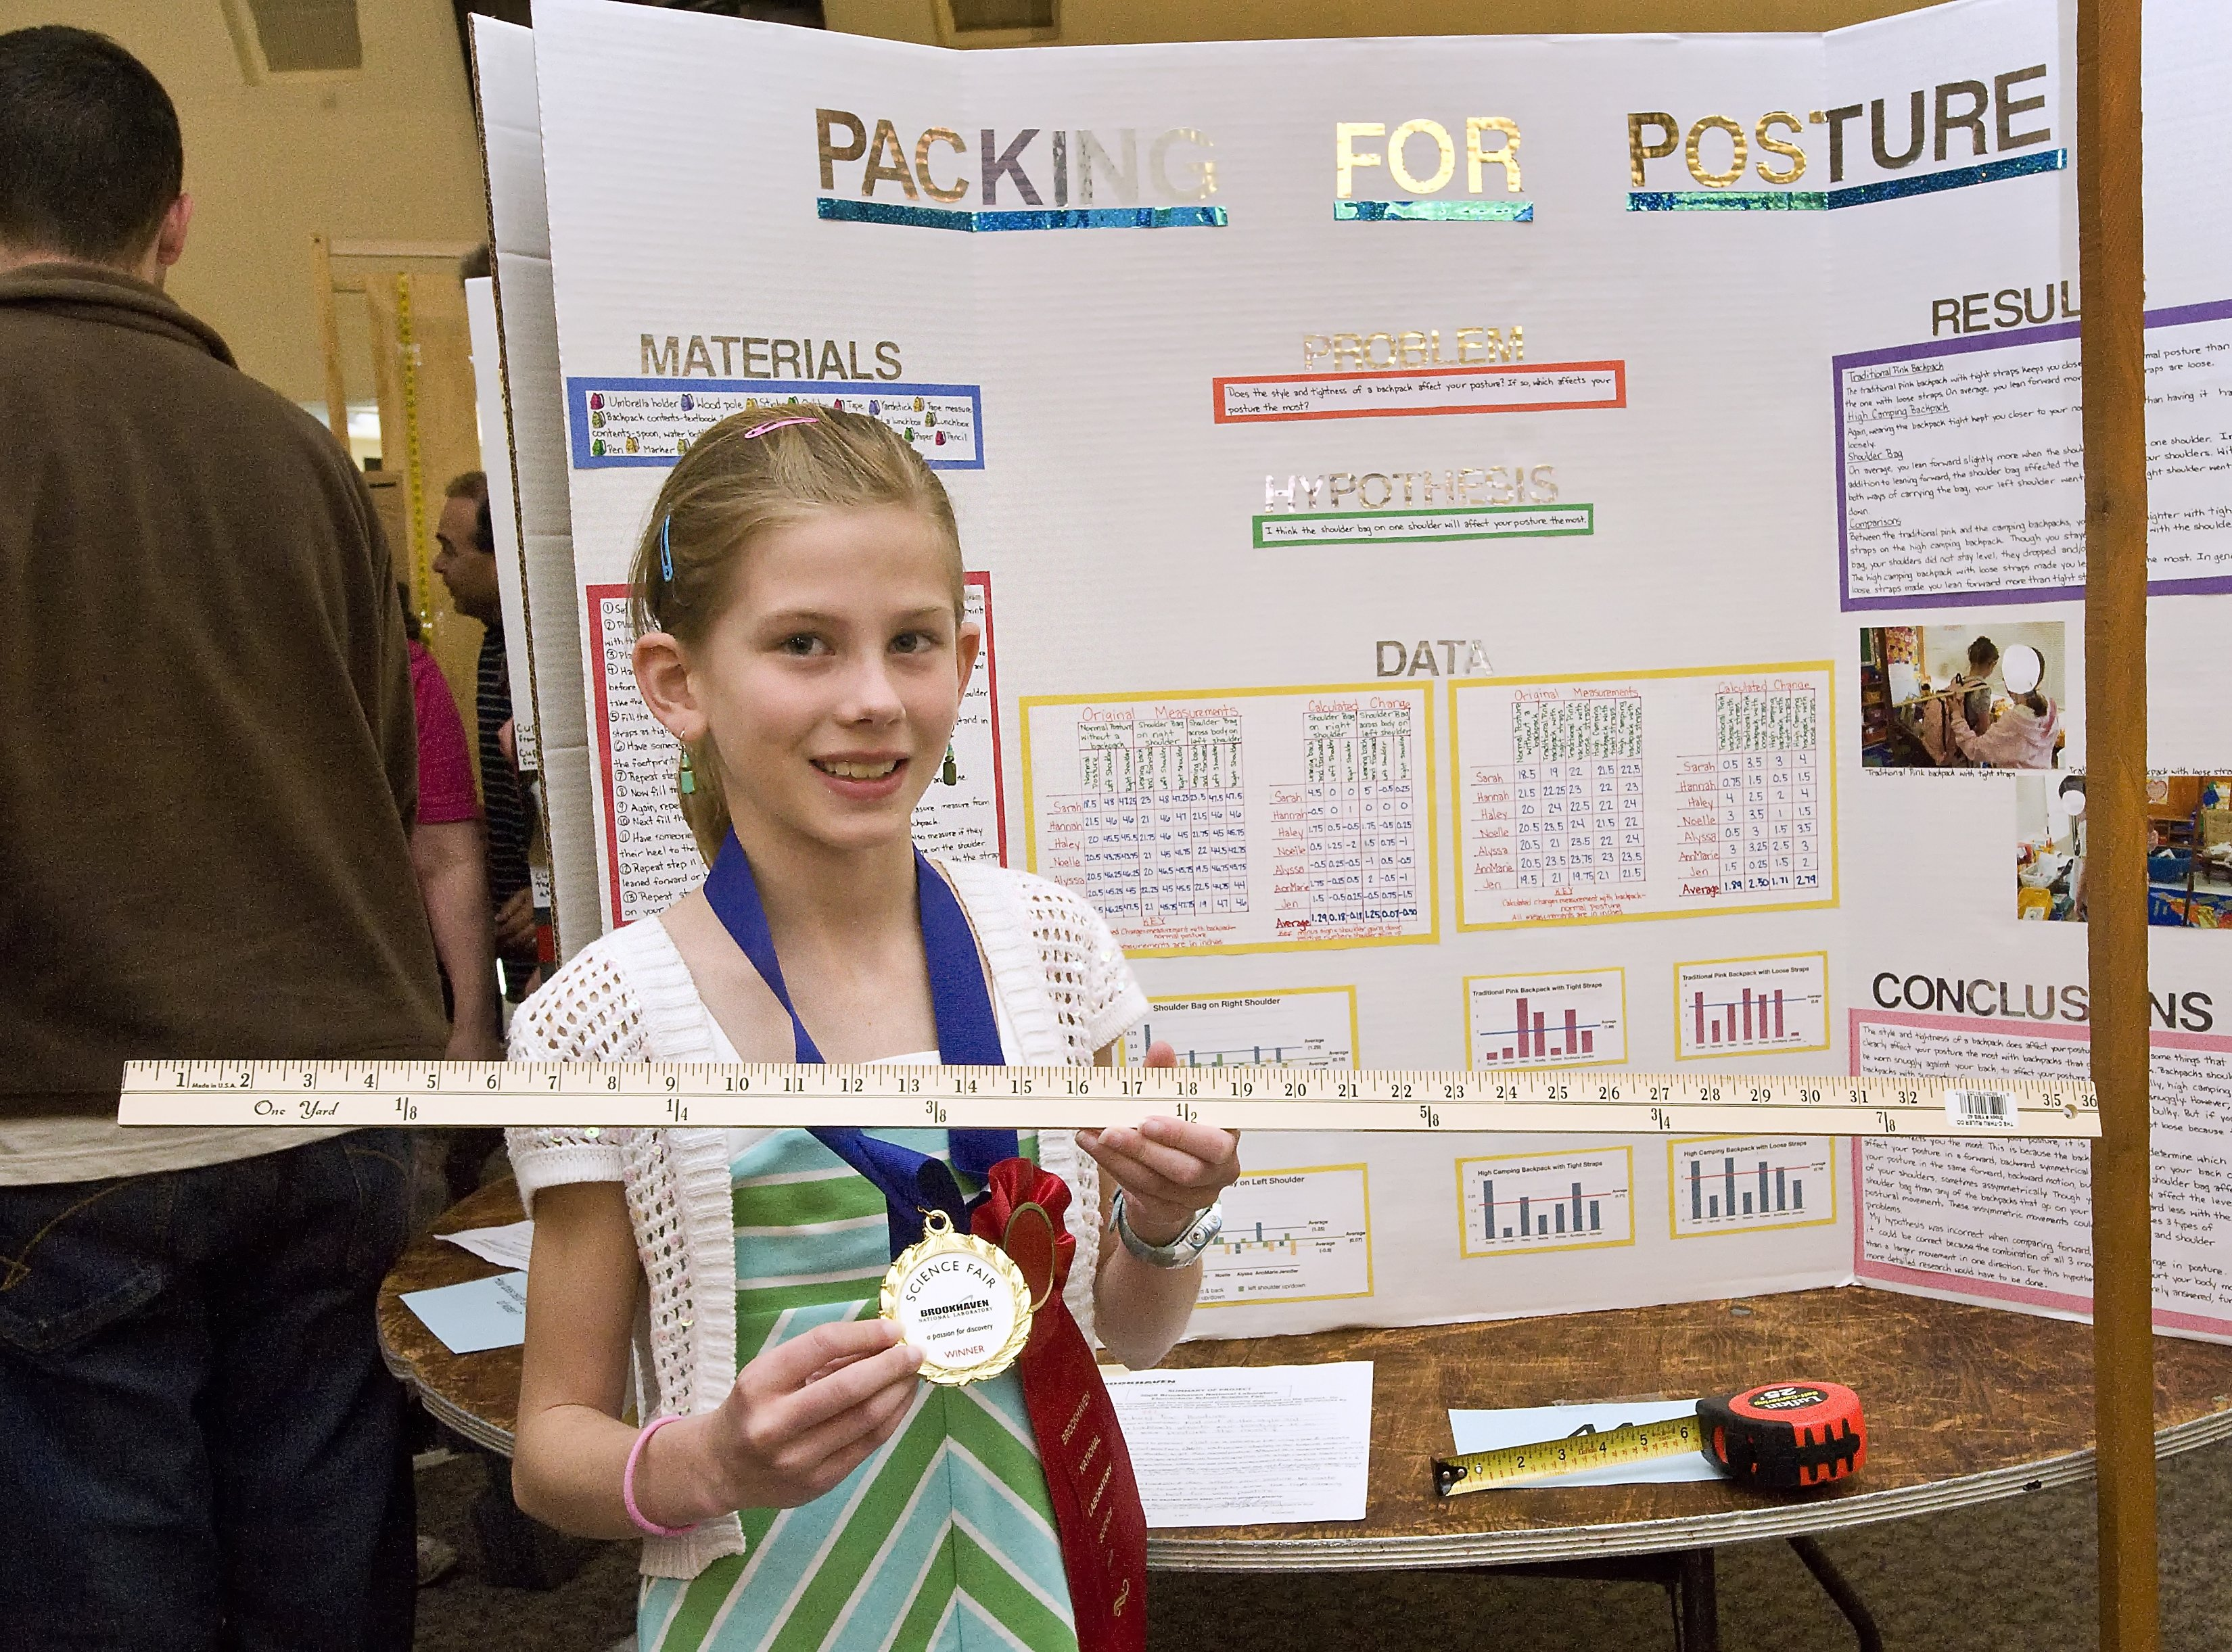 10 Stunning Award Winning Science Fair Ideas from ant control to wind energy winning projects at brookhaven 46 2021